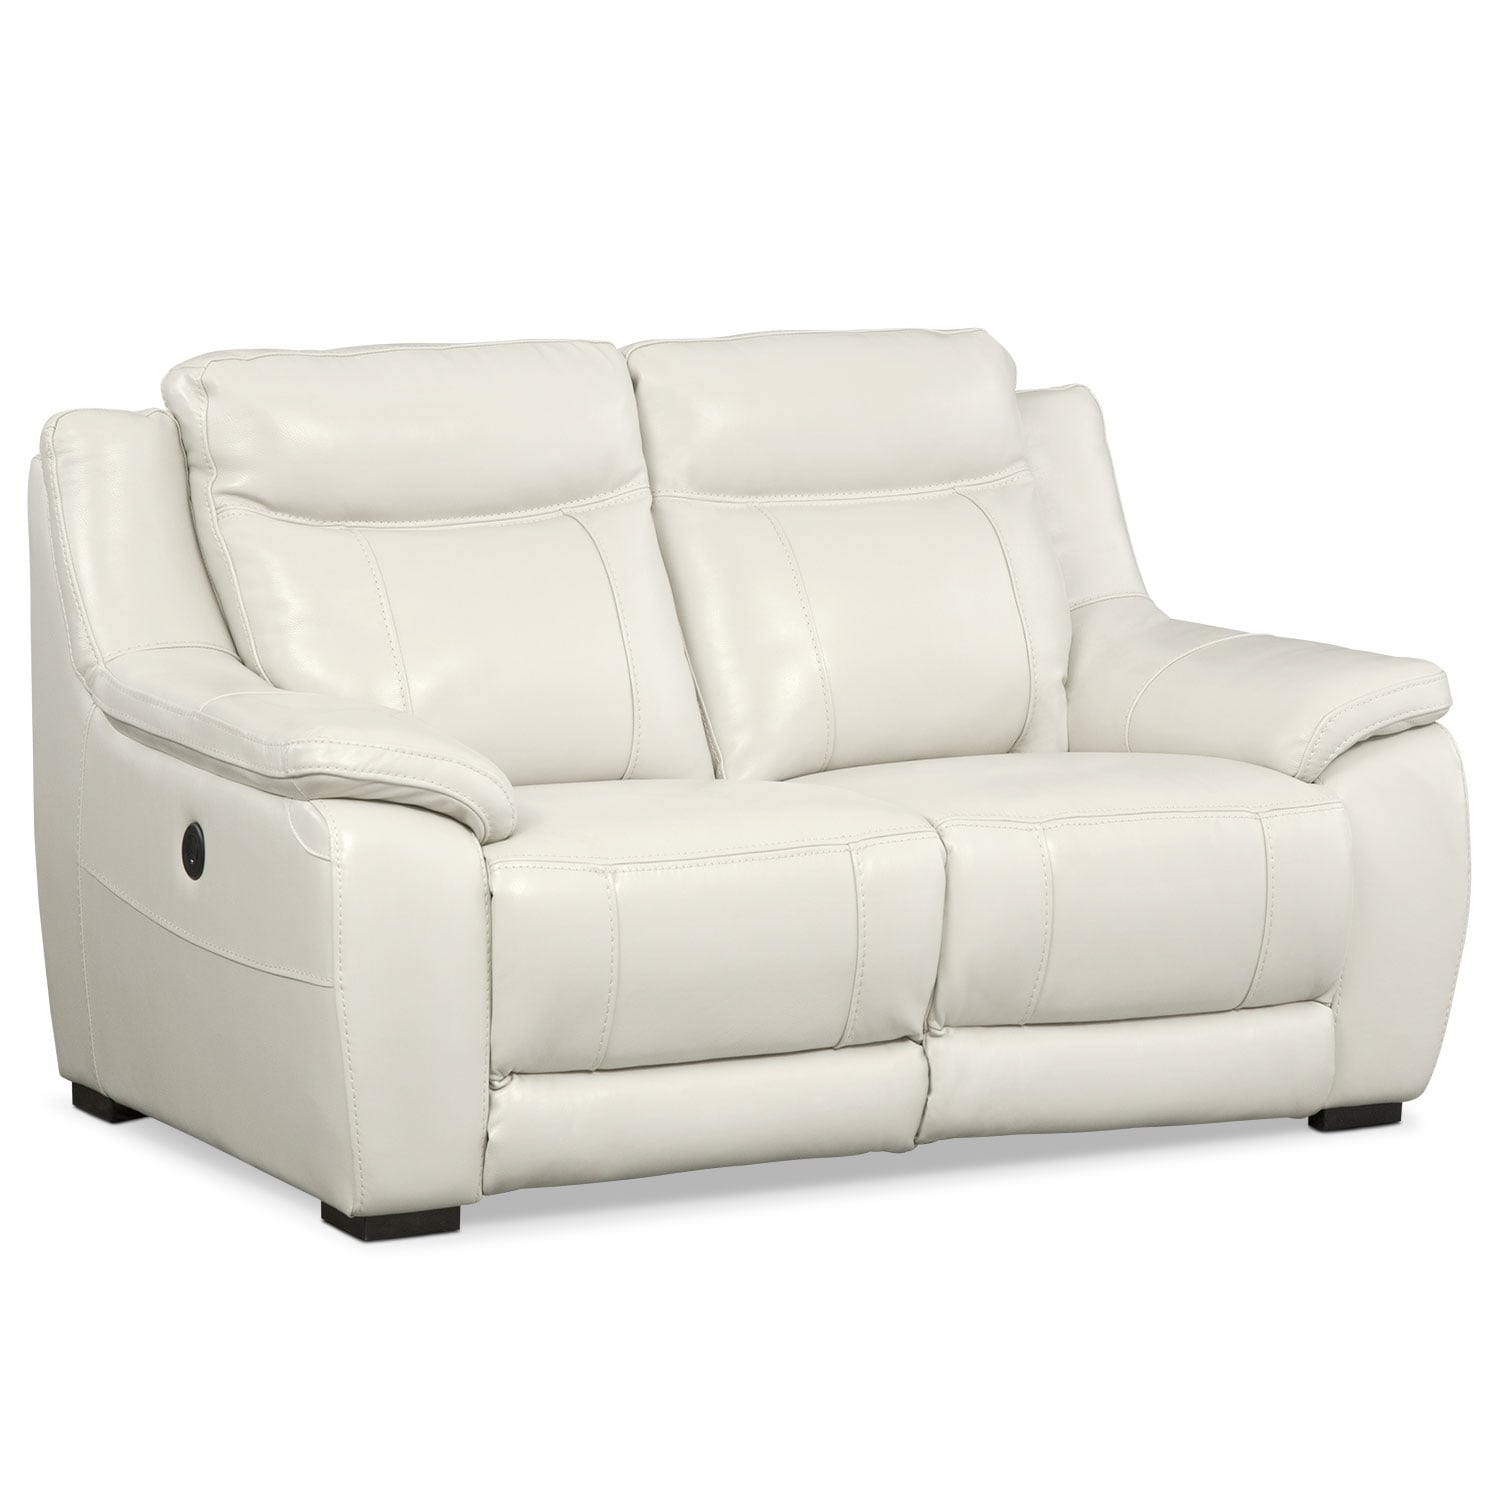 Lido power reclining sofa reclining loveseat and recliner set ivory value city furniture Sofa loveseat